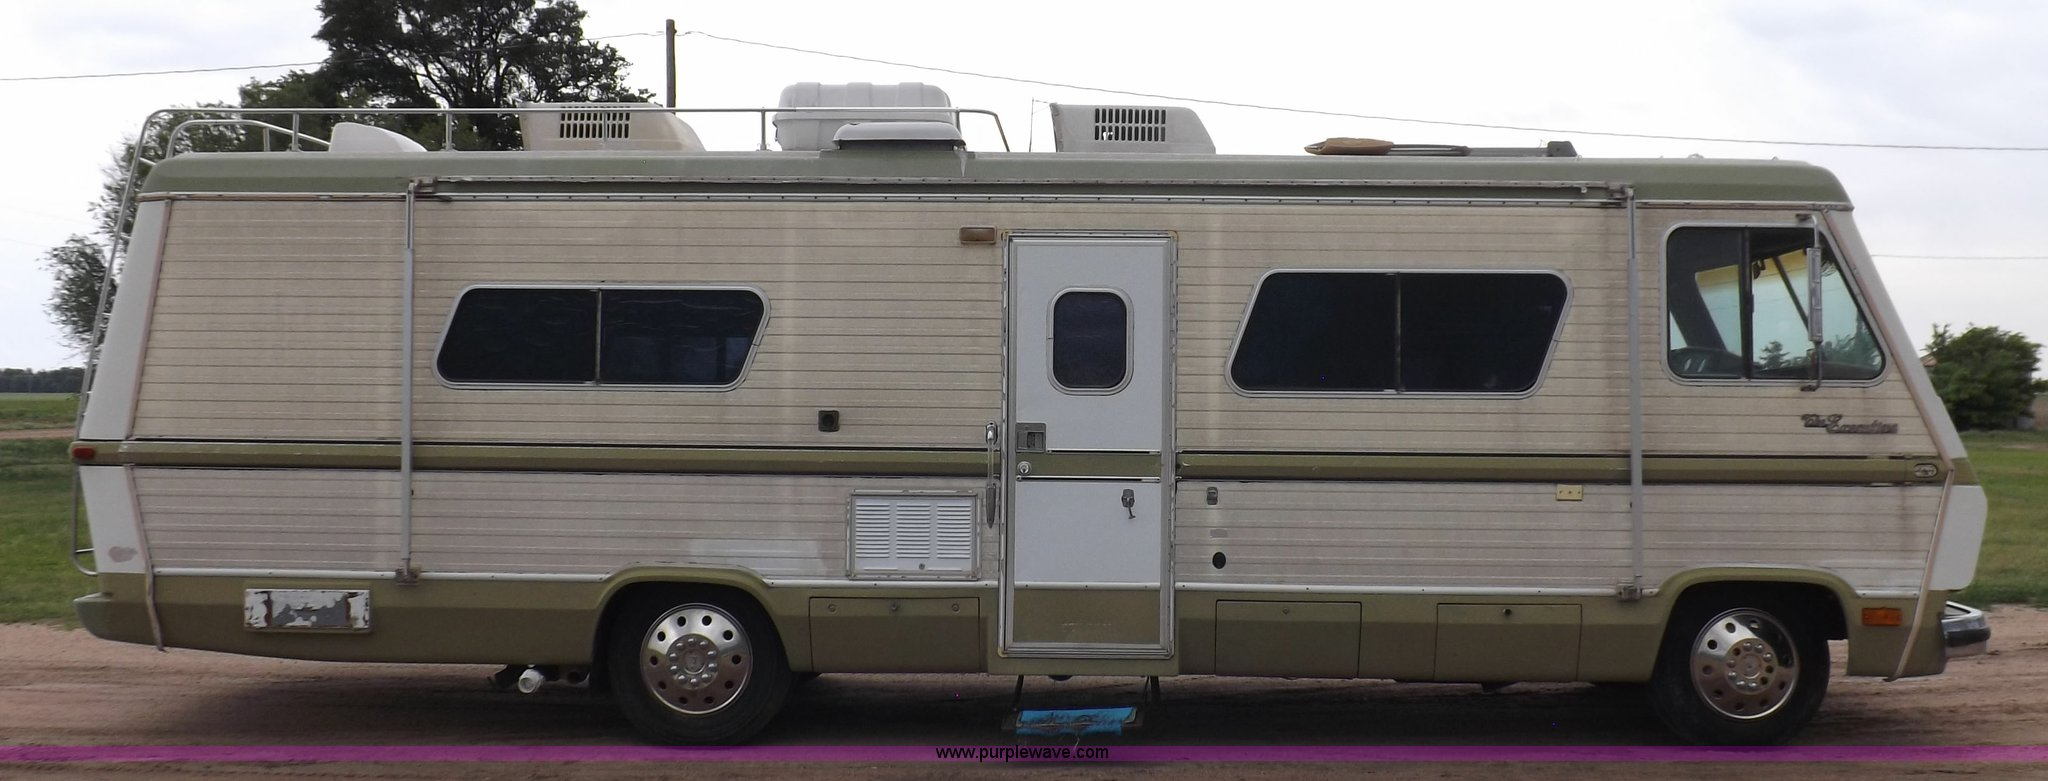 1978 Executive RV | Item K3921 | SOLD! June 3 Vehicles and E